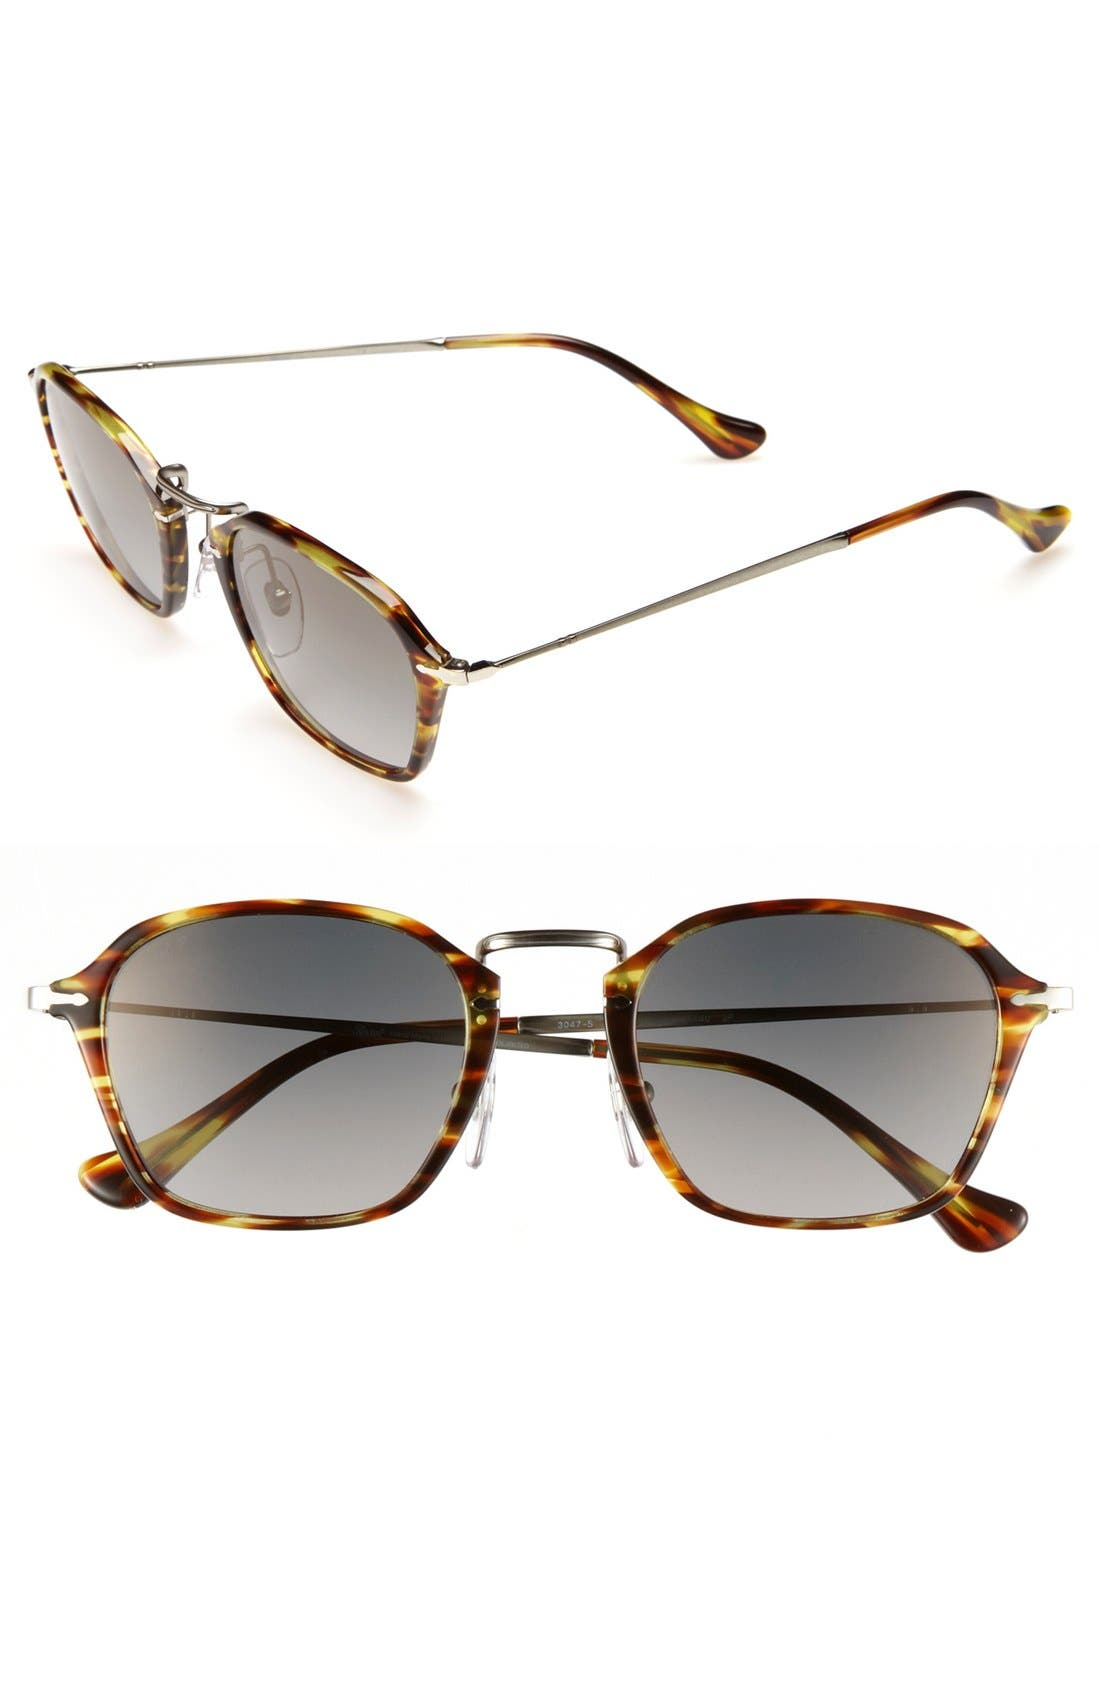 Alternate Image 1 Selected - Persol 49mm Polarized Sunglasses